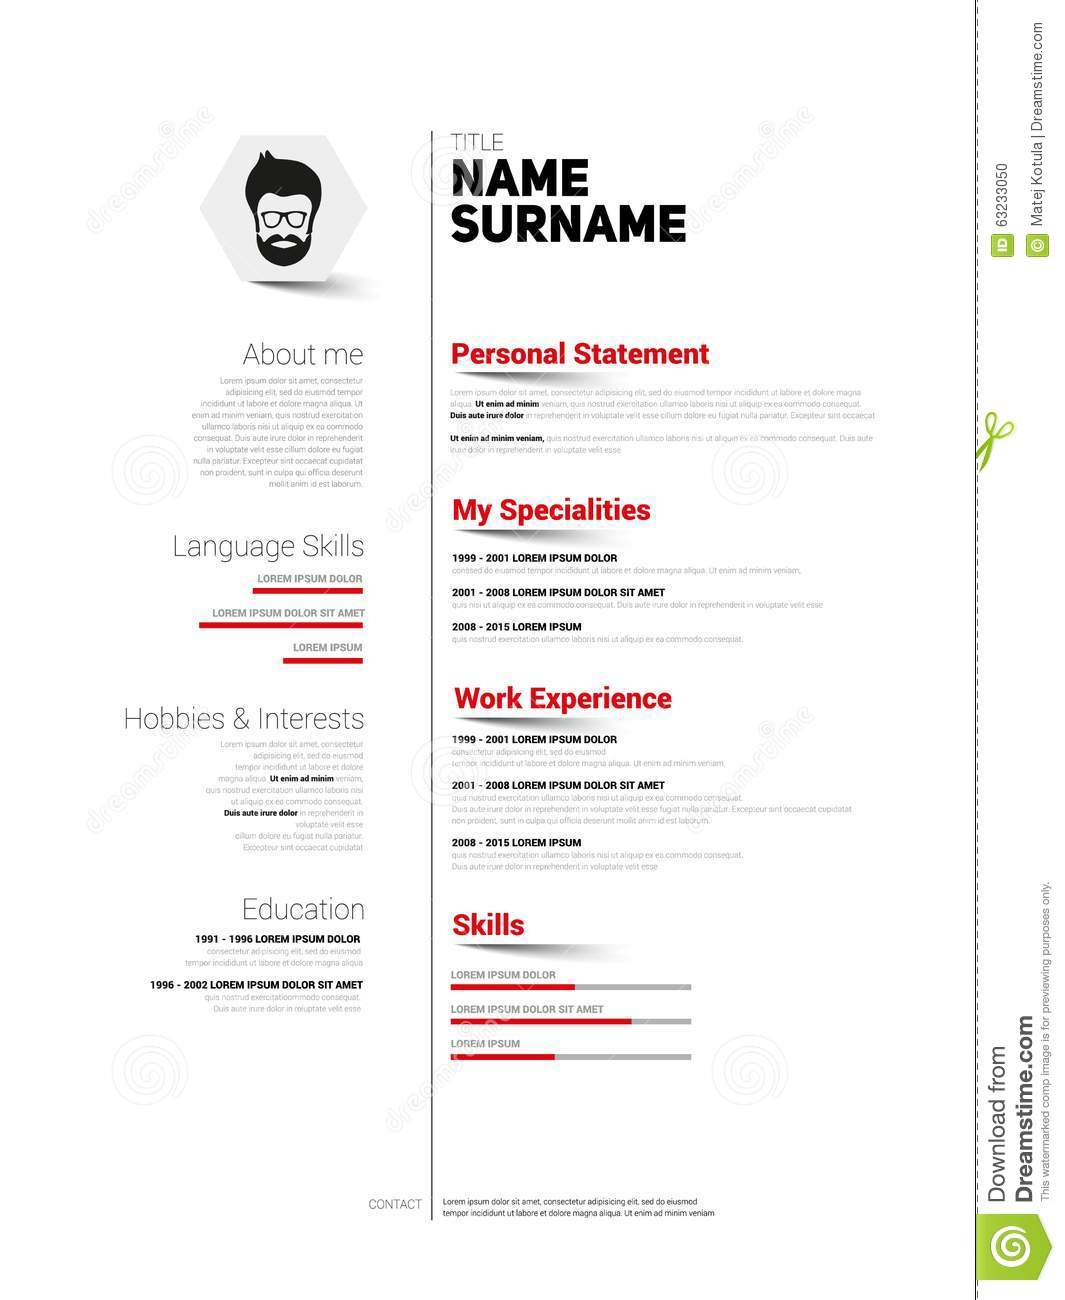 download cv simple bw stock illustration illustration of flat 63233050